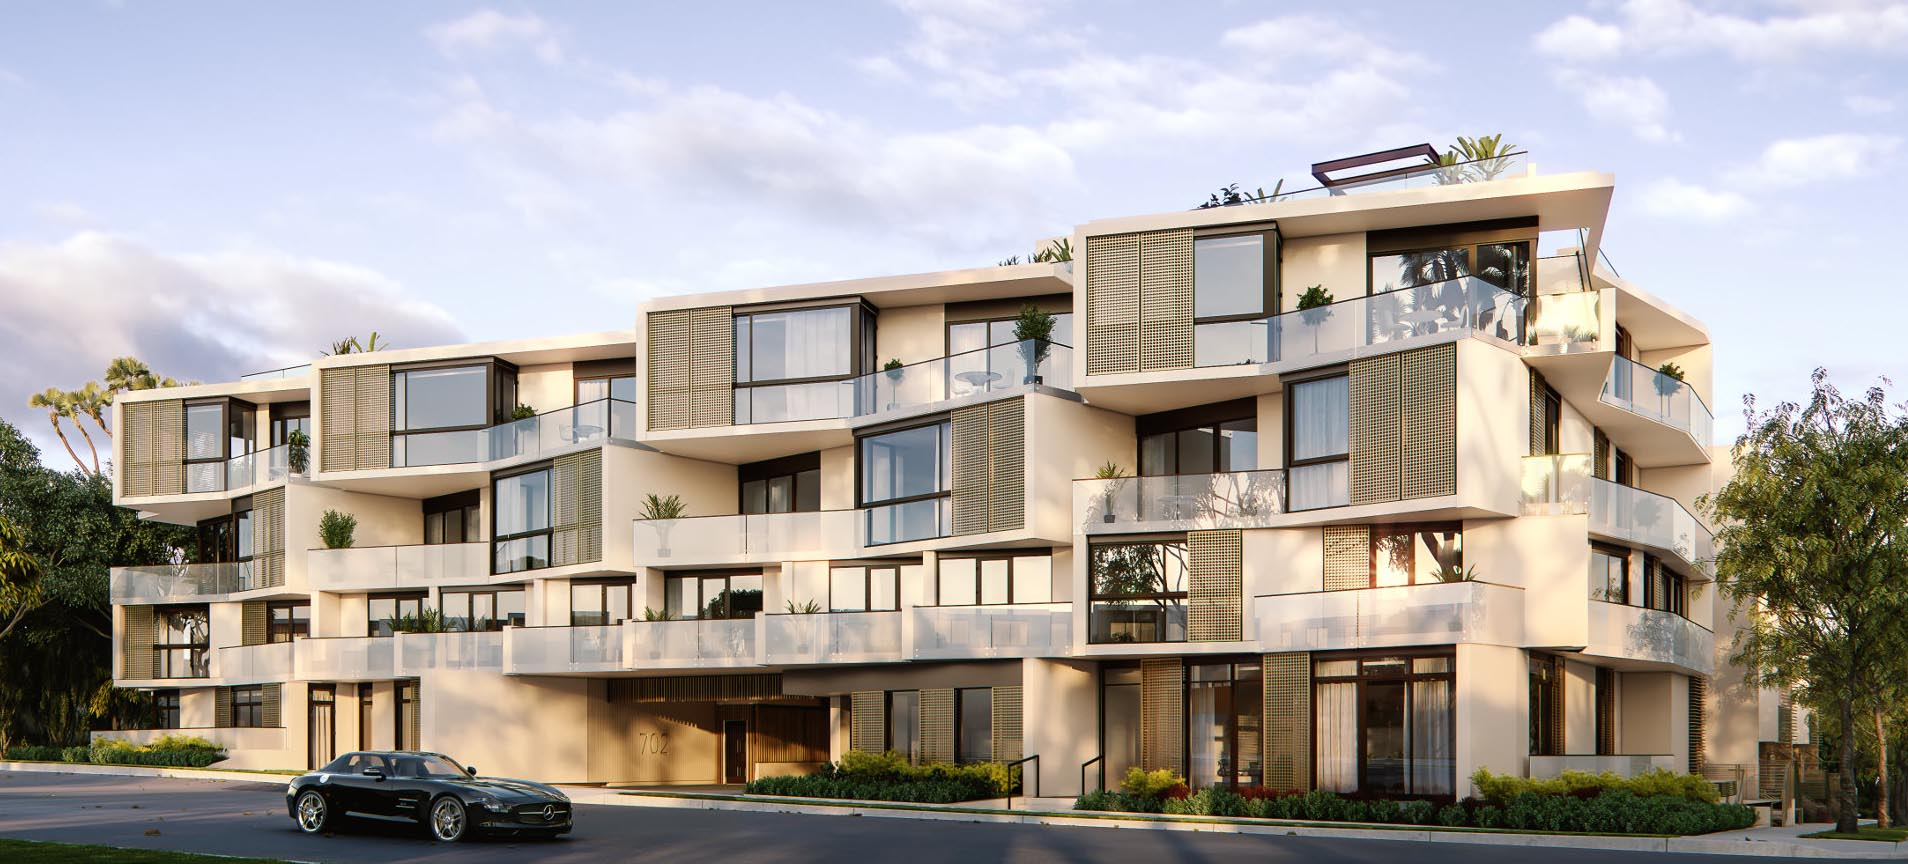 Project Spotlight: The Harland Condos – West Hollywood, CA